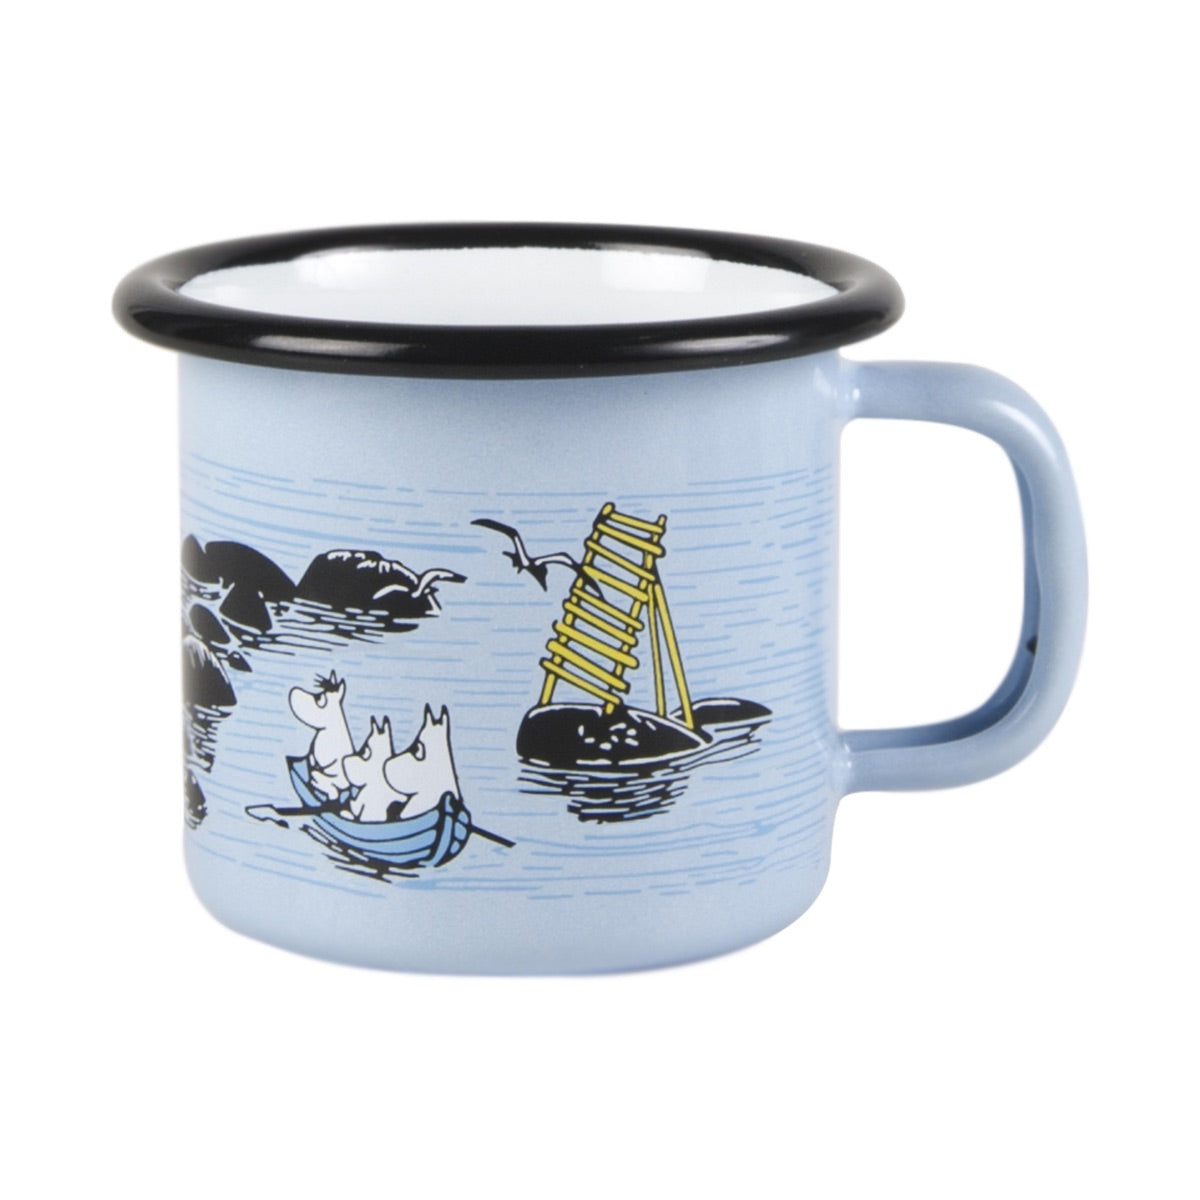 "Moomin Friends ""Summer Wind"" Enamel Mug 1.5 dl Toddler Size"